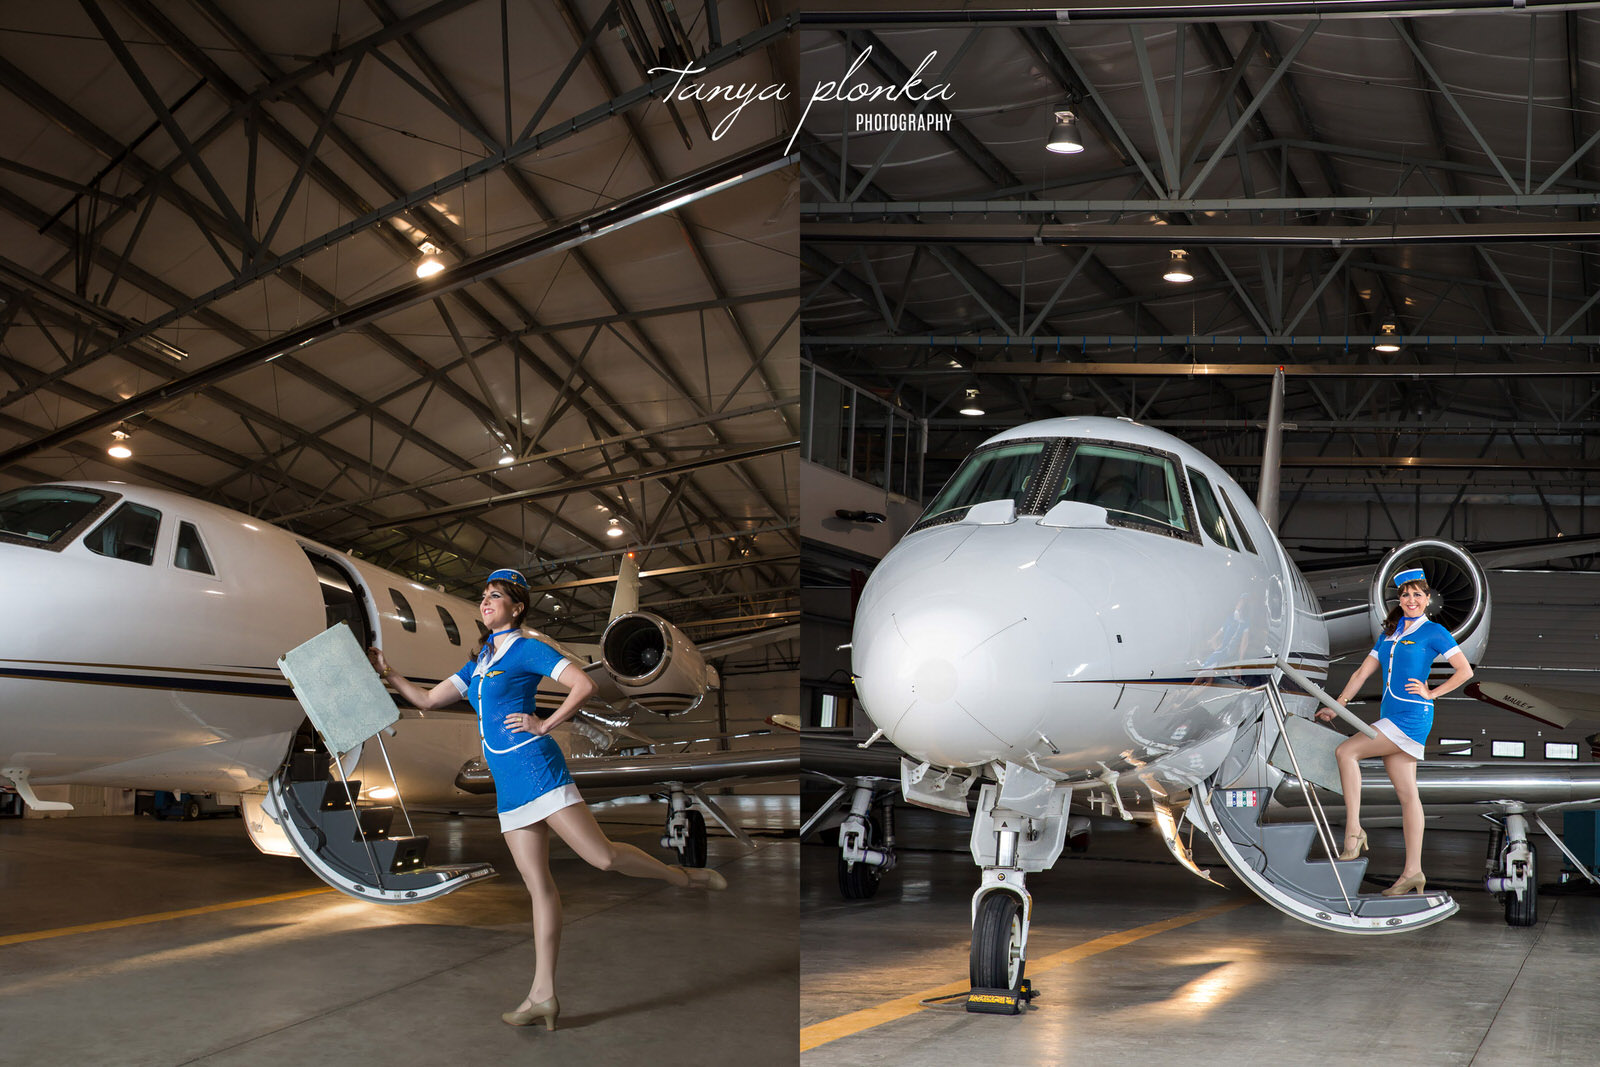 woman dressed as cute flight attendant poses with airplane in a Lethbridge Airport hangar